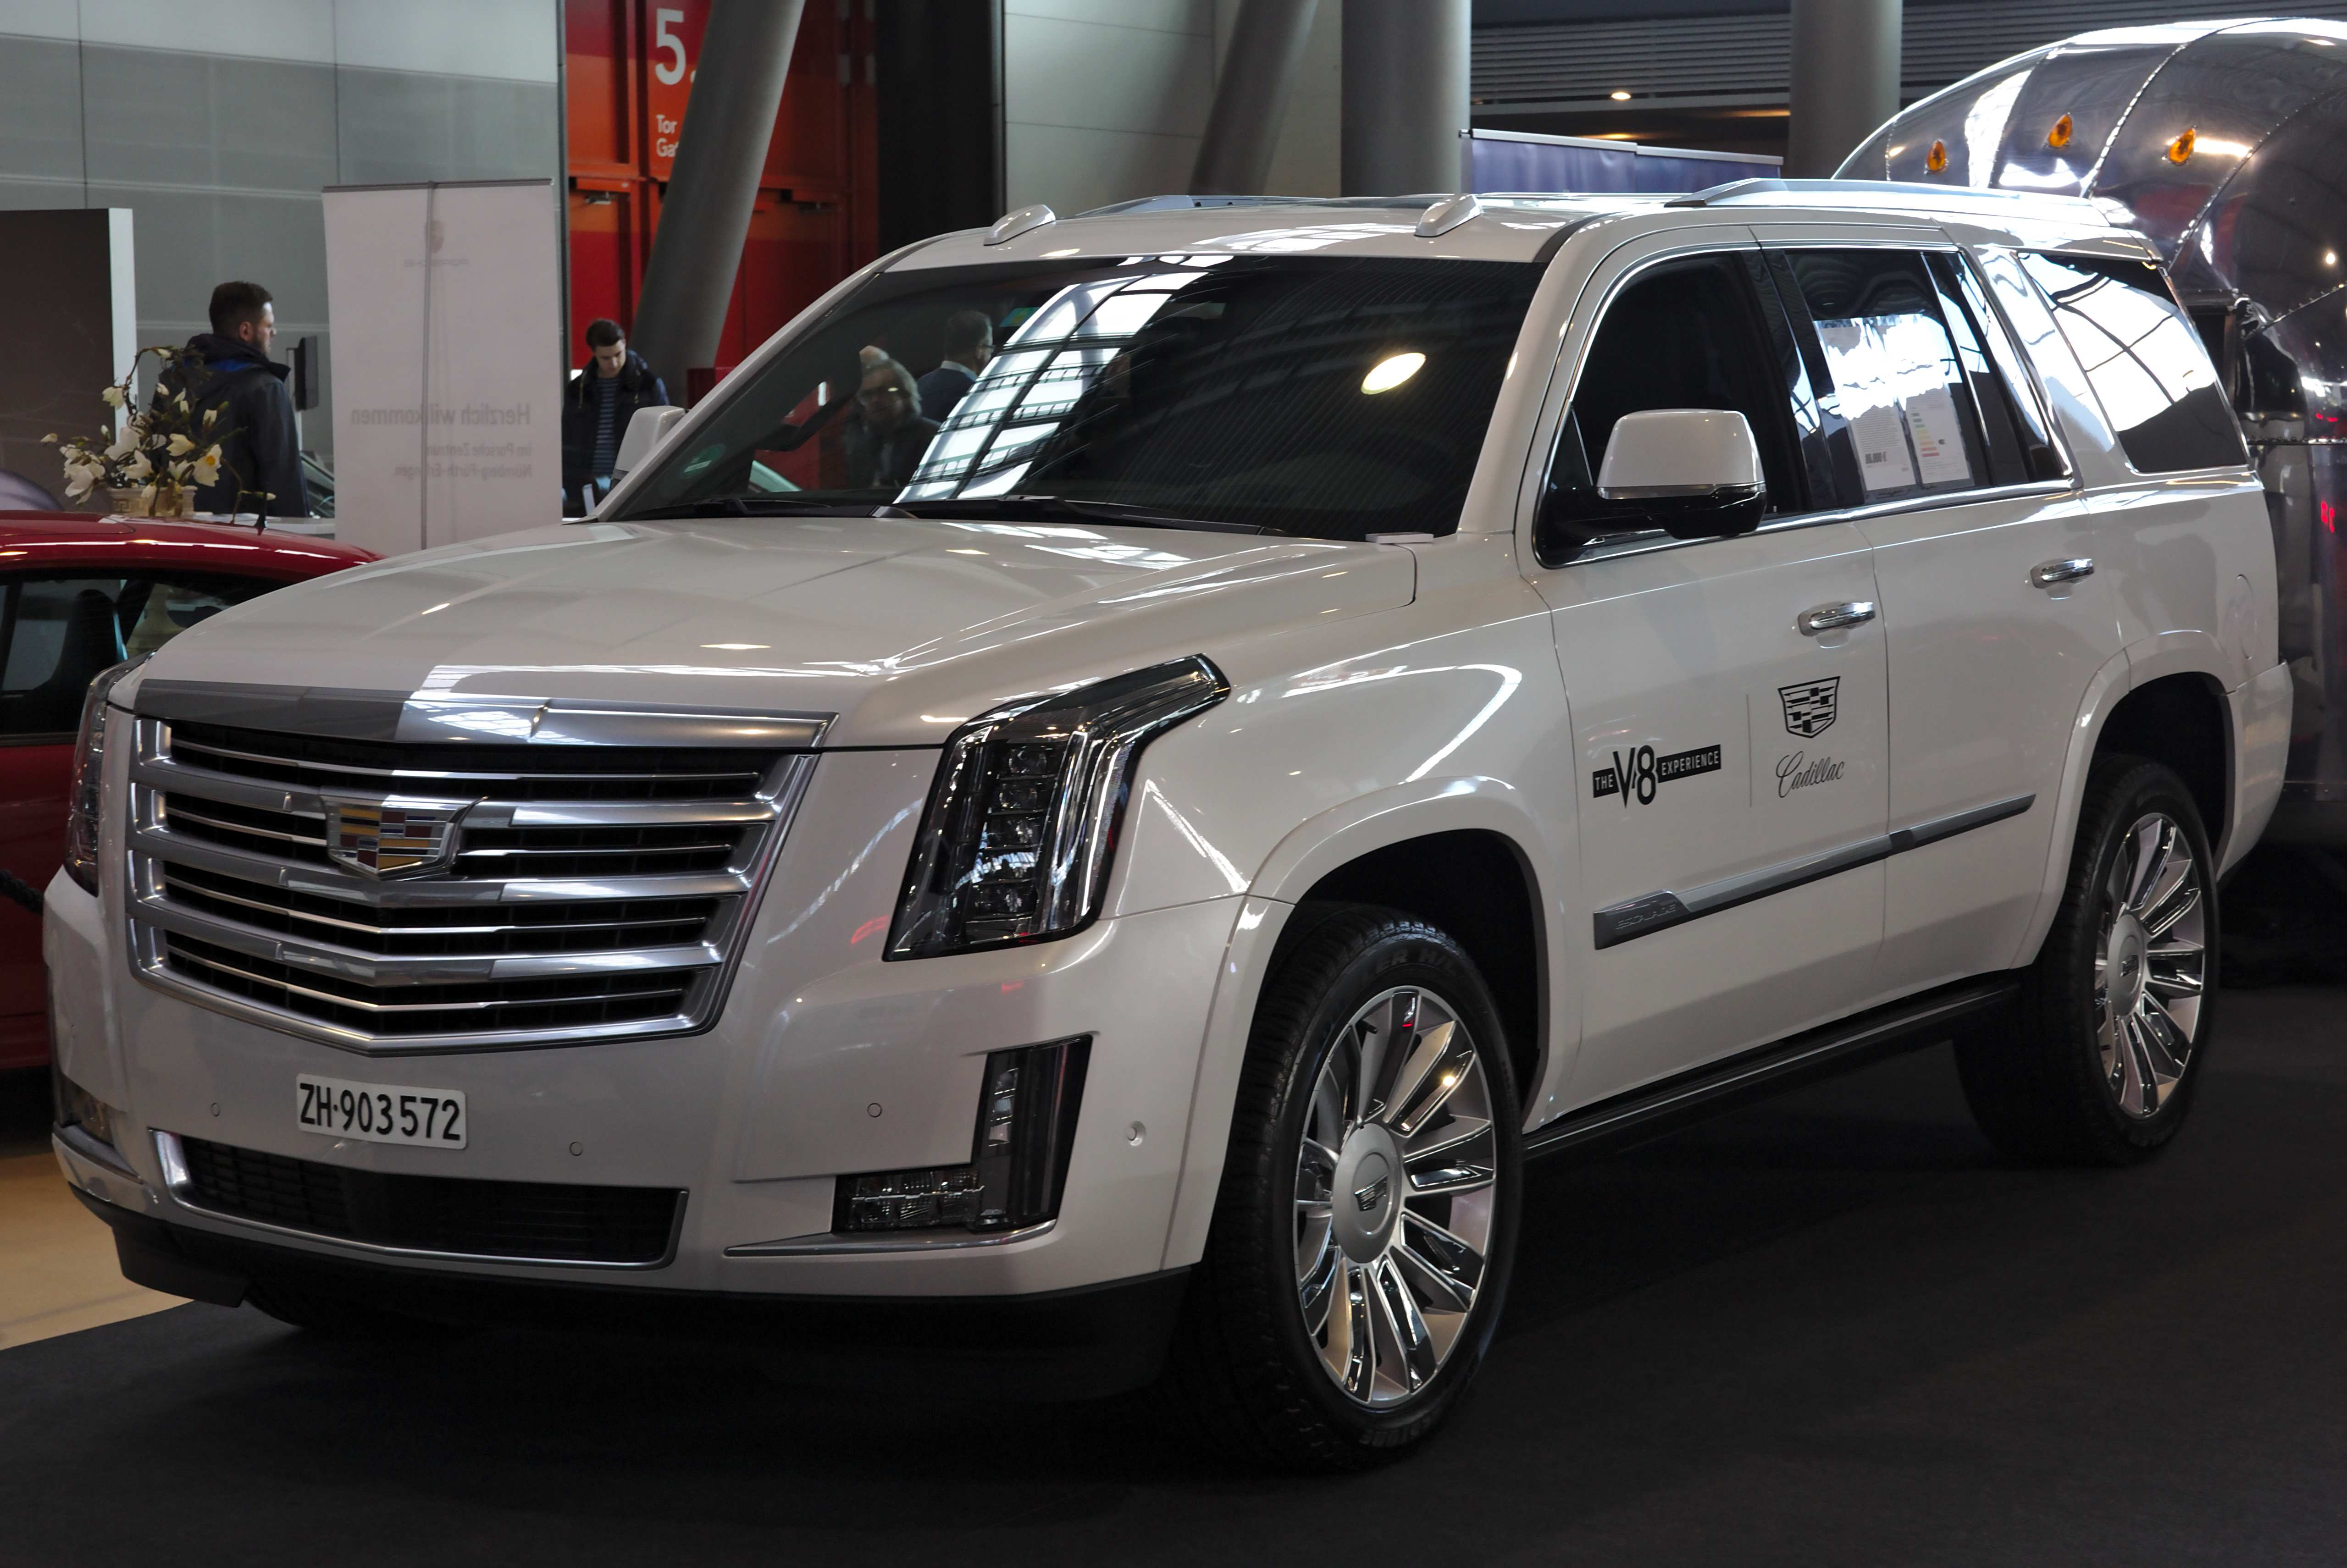 45 All New Build 2020 Cadillac Escalade Overview